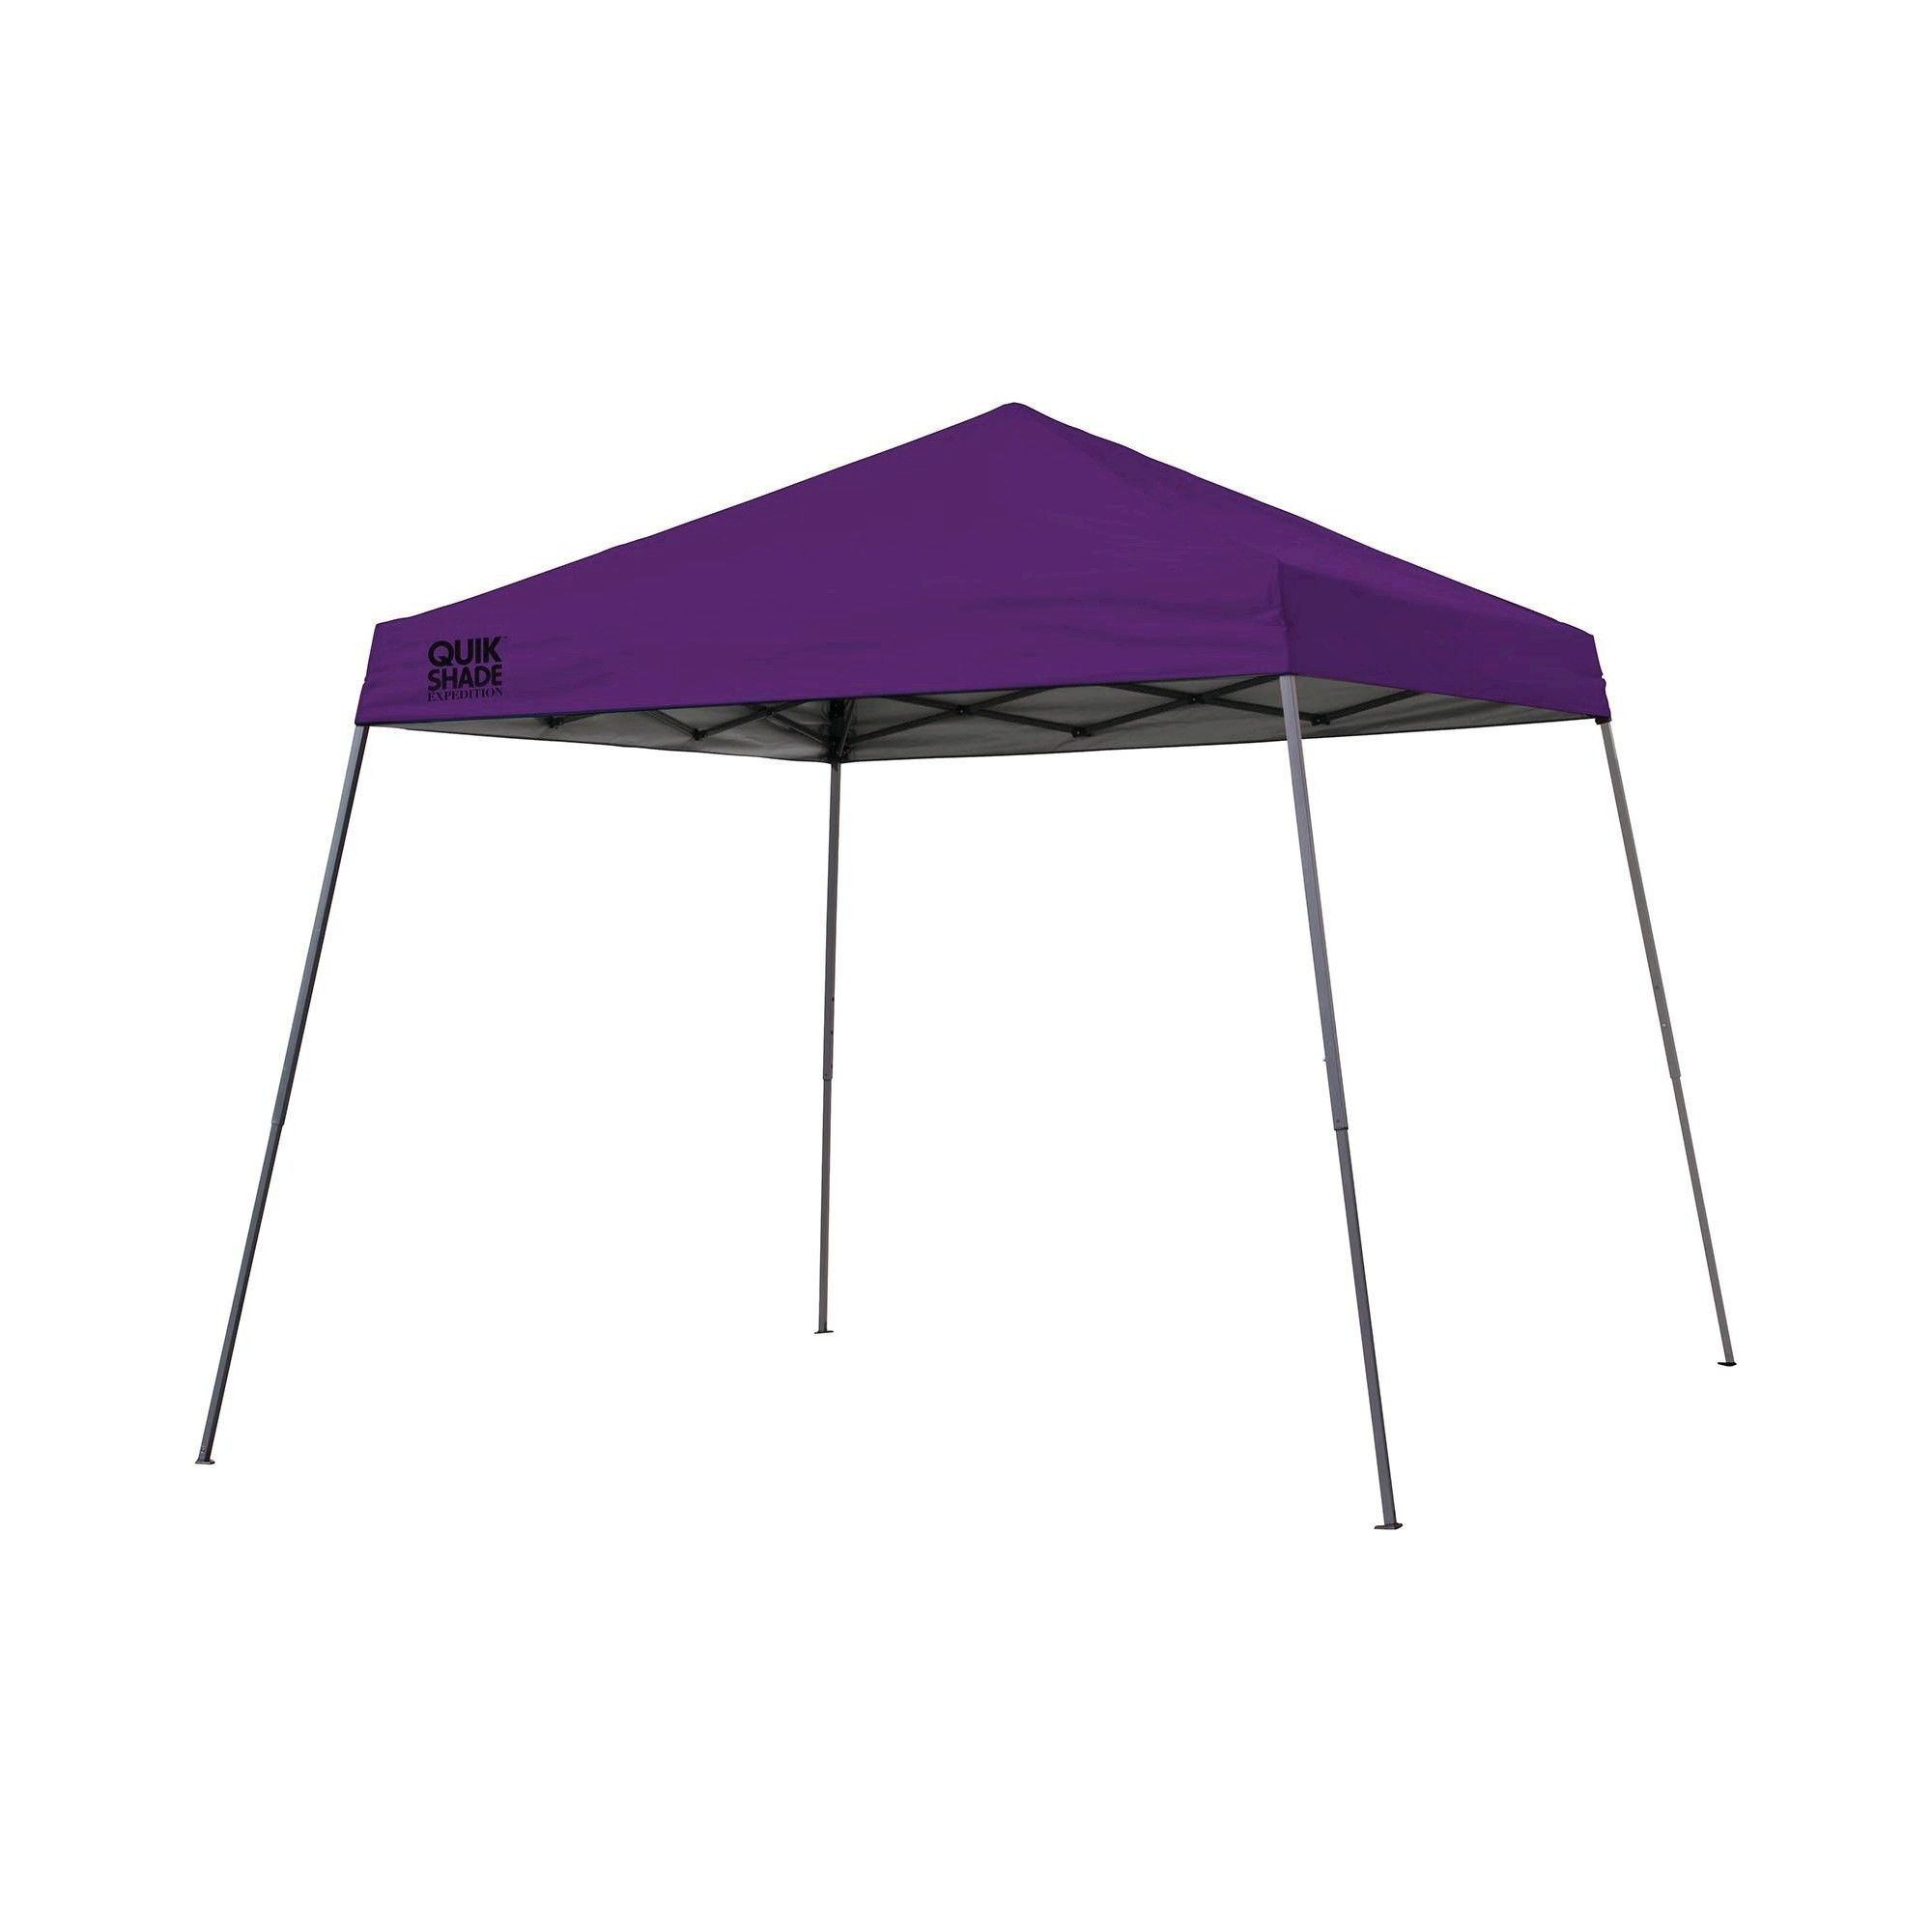 Quik Shade Expedition 64 Instant Canopy  Team Colors  - Purple  sc 1 st  Pinterest & Quik Shade Expedition 64 Instant Canopy